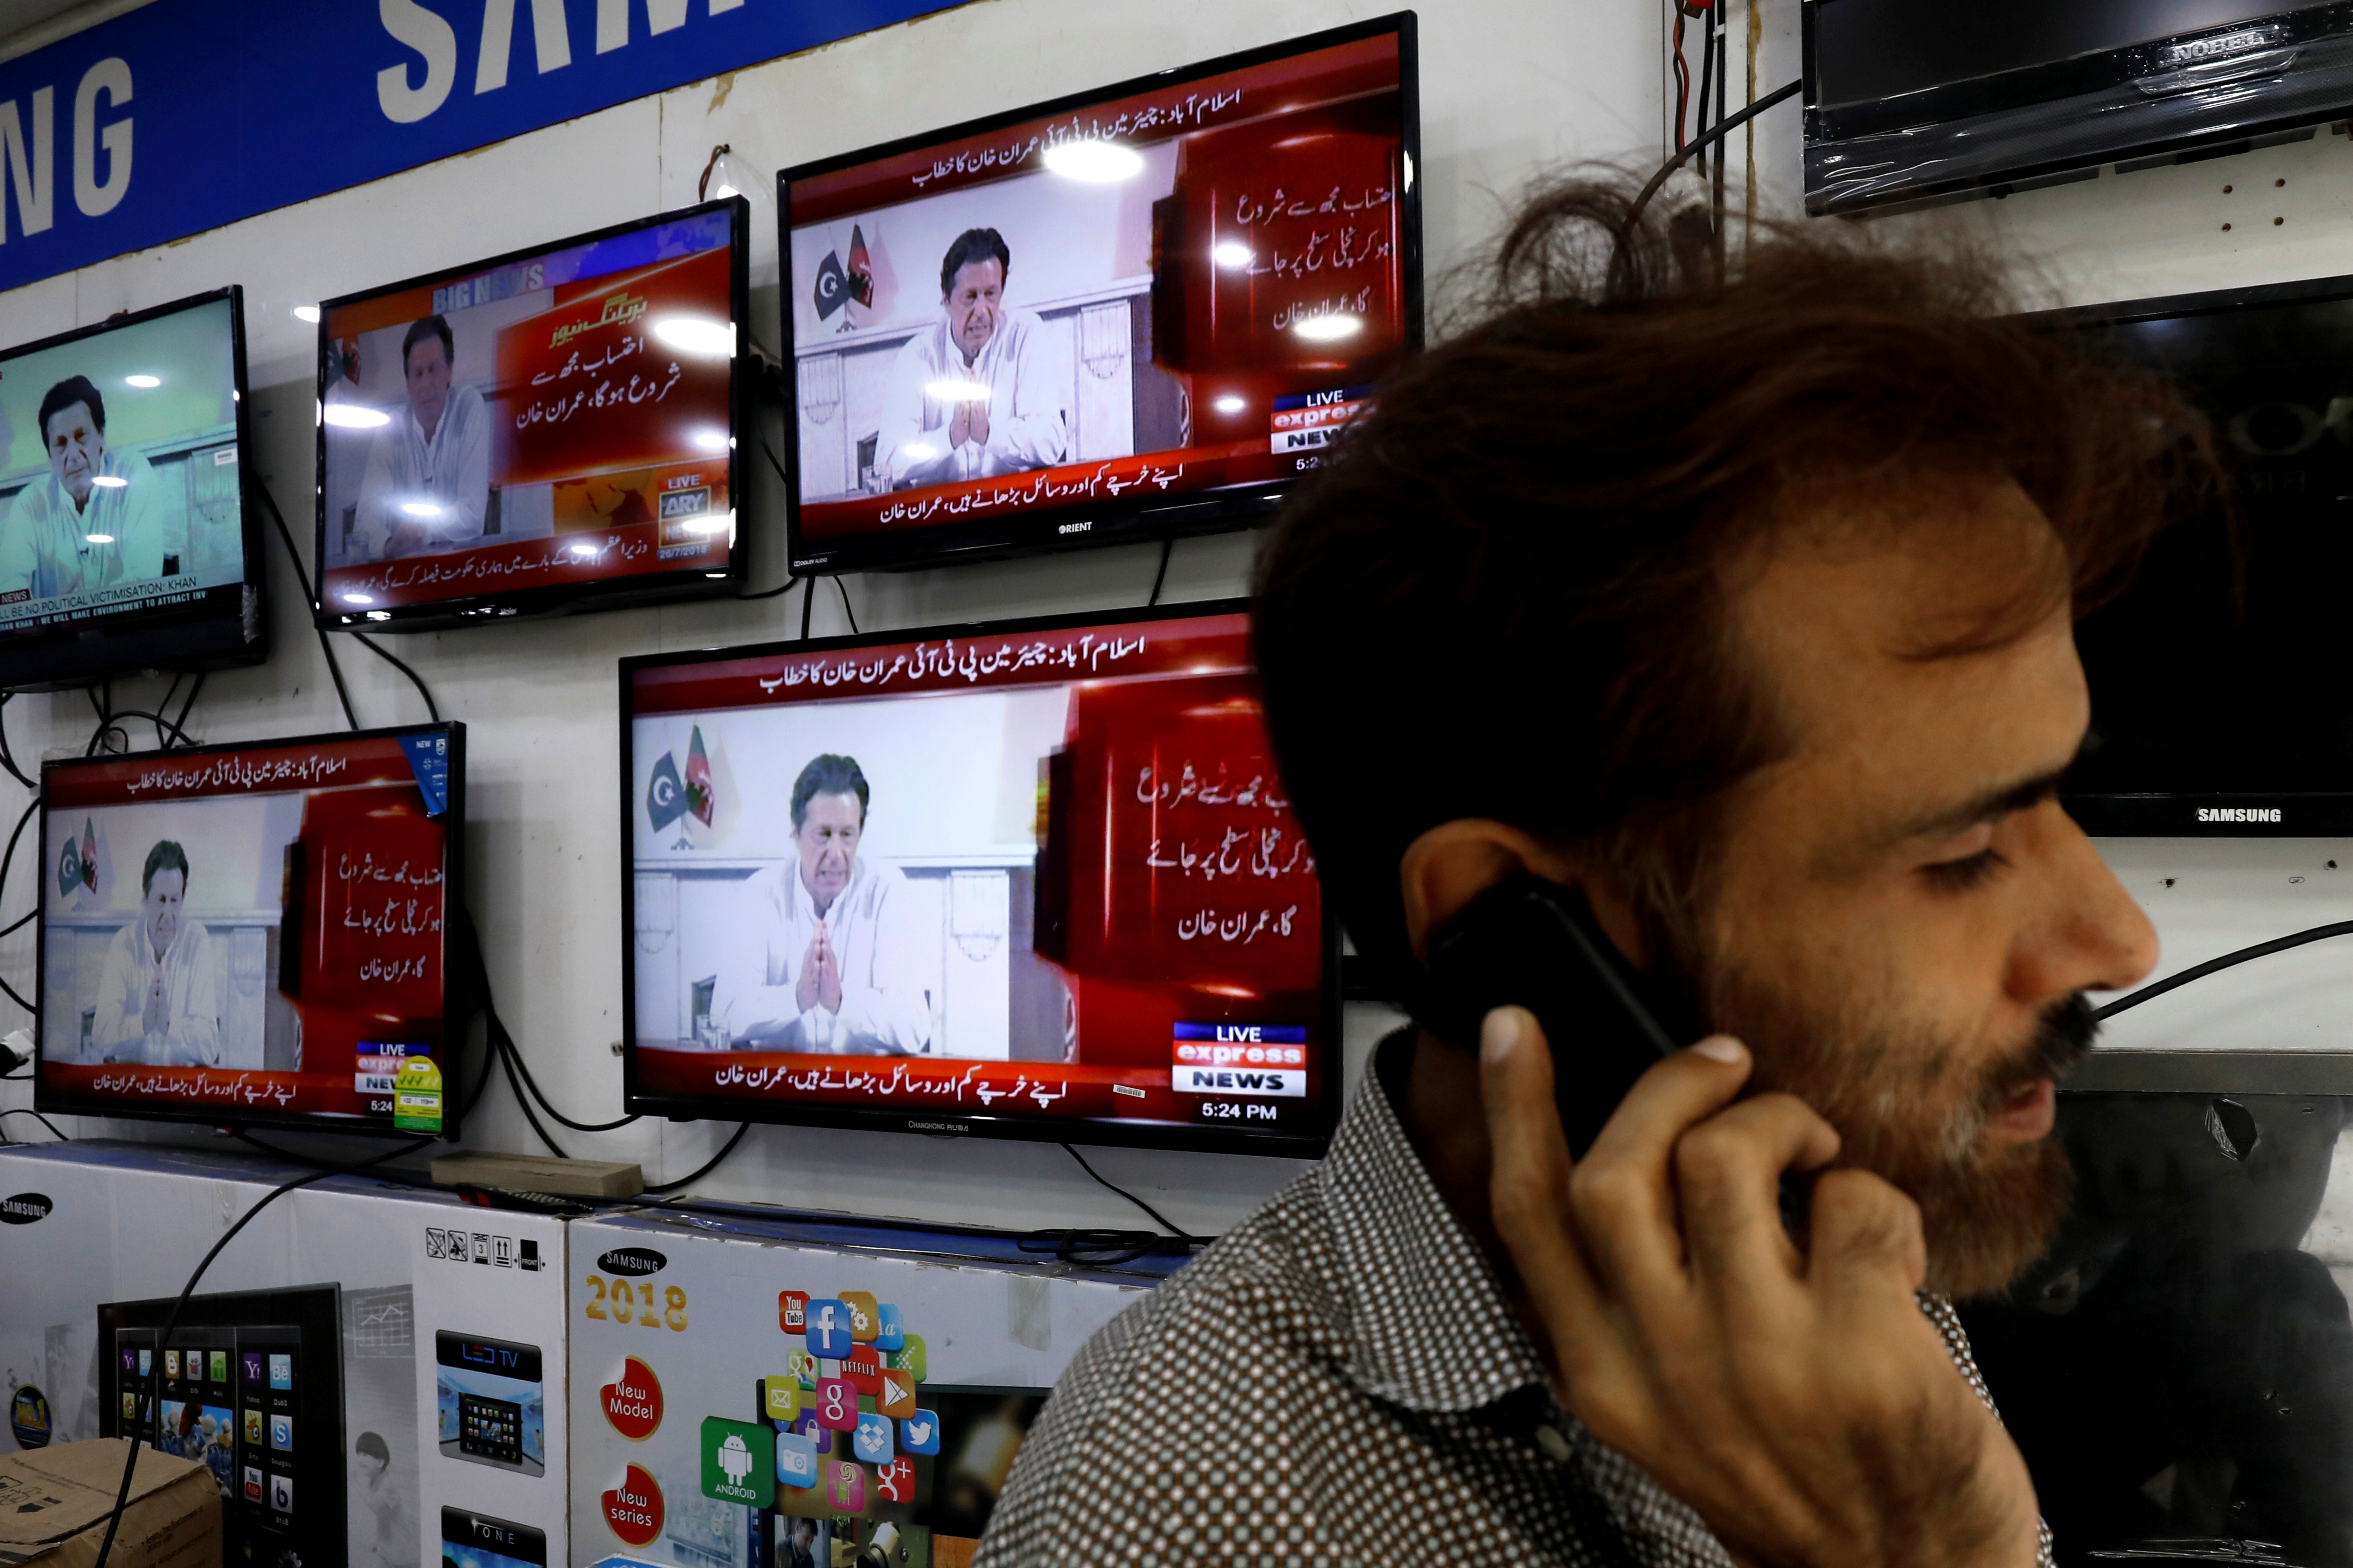 A shopkeeper talks on his mobile phone, with the background of screens displaying the cricket star-turned-politician Imran Khan, chairman of Pakistan Tehreek-e-Insaf (PTI), in a televised speech a day after the general election, at a market in